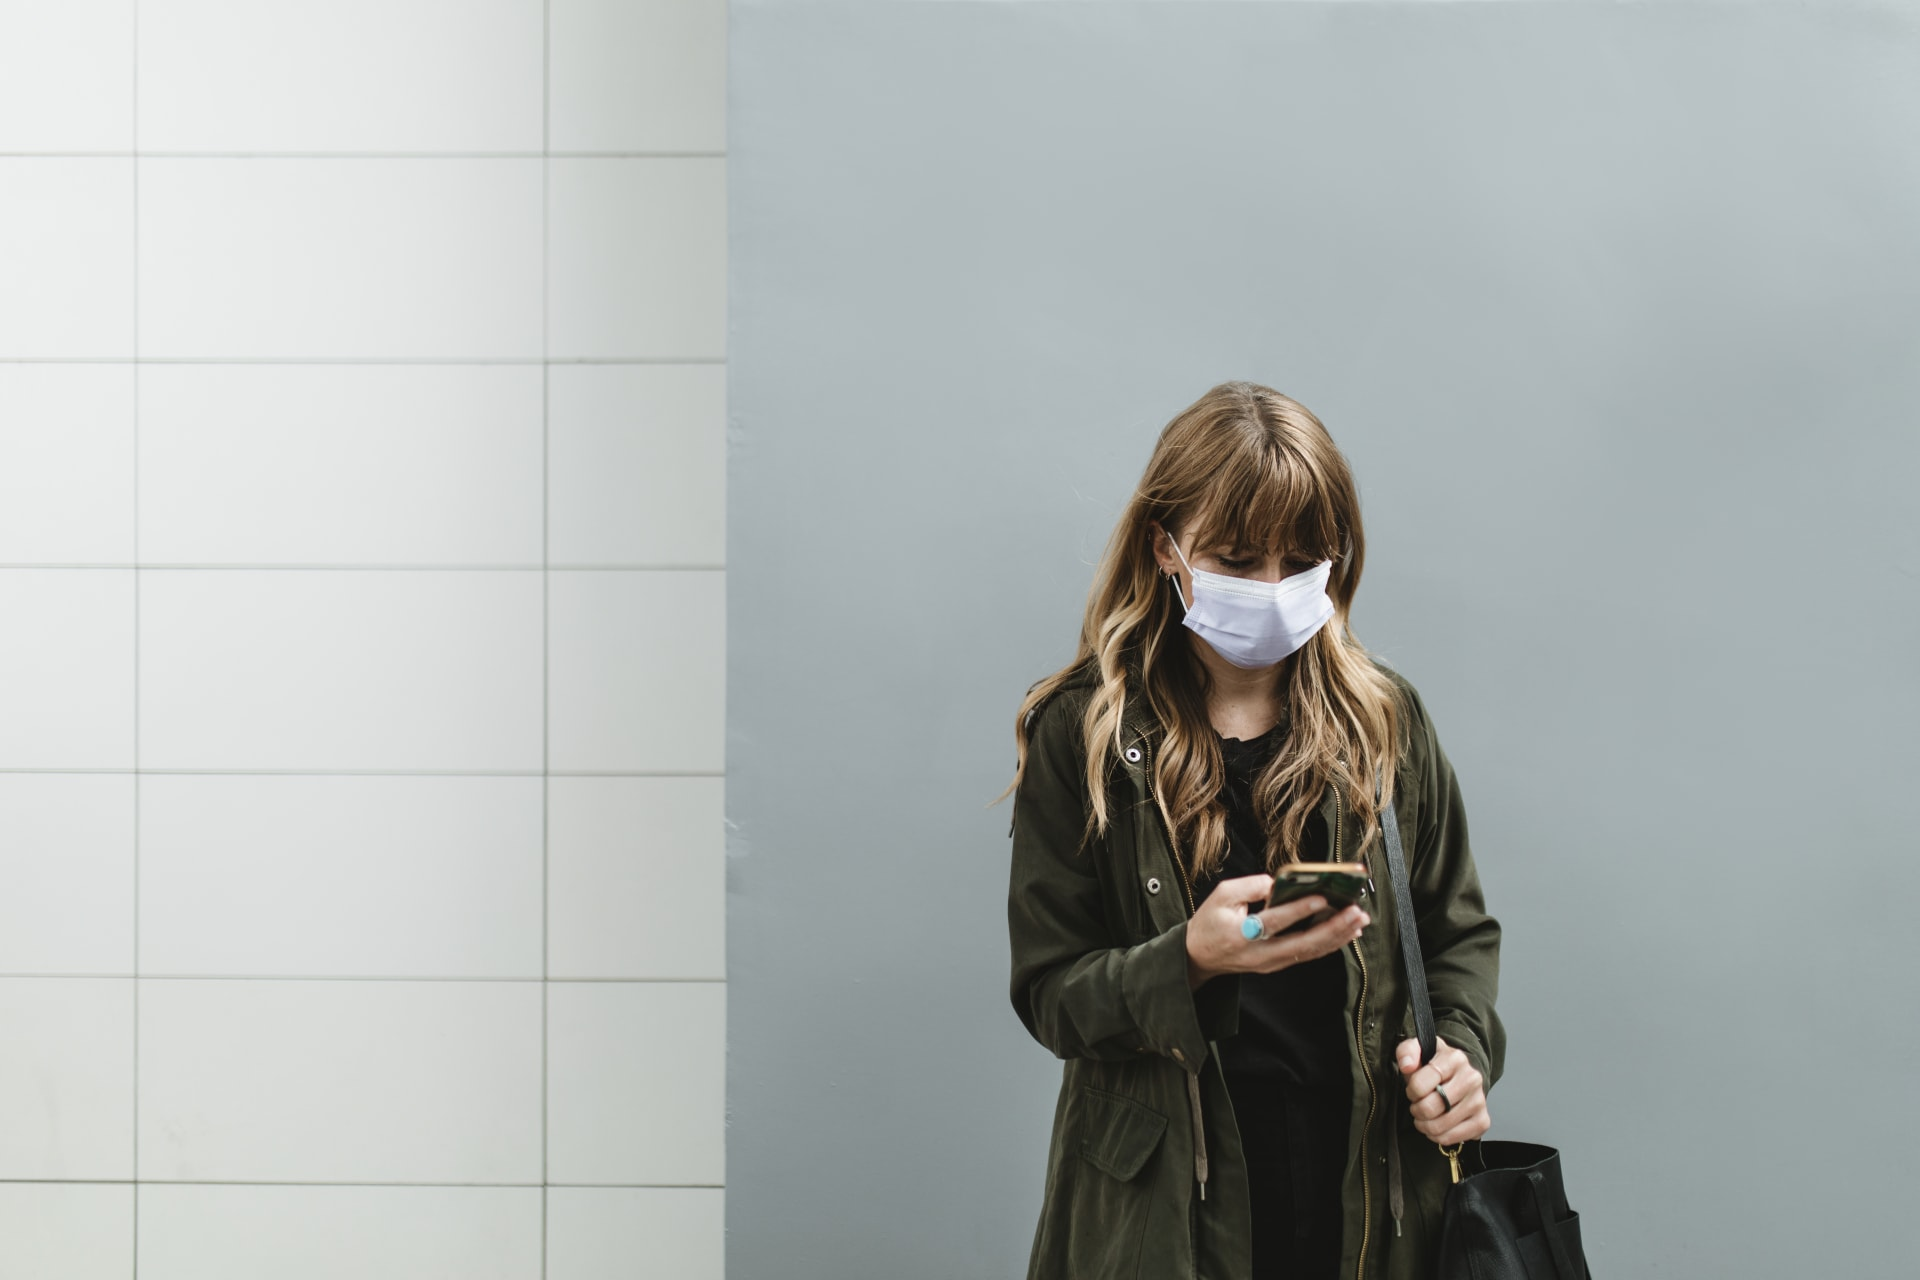 woman wearing a mask looking at her mobile phone